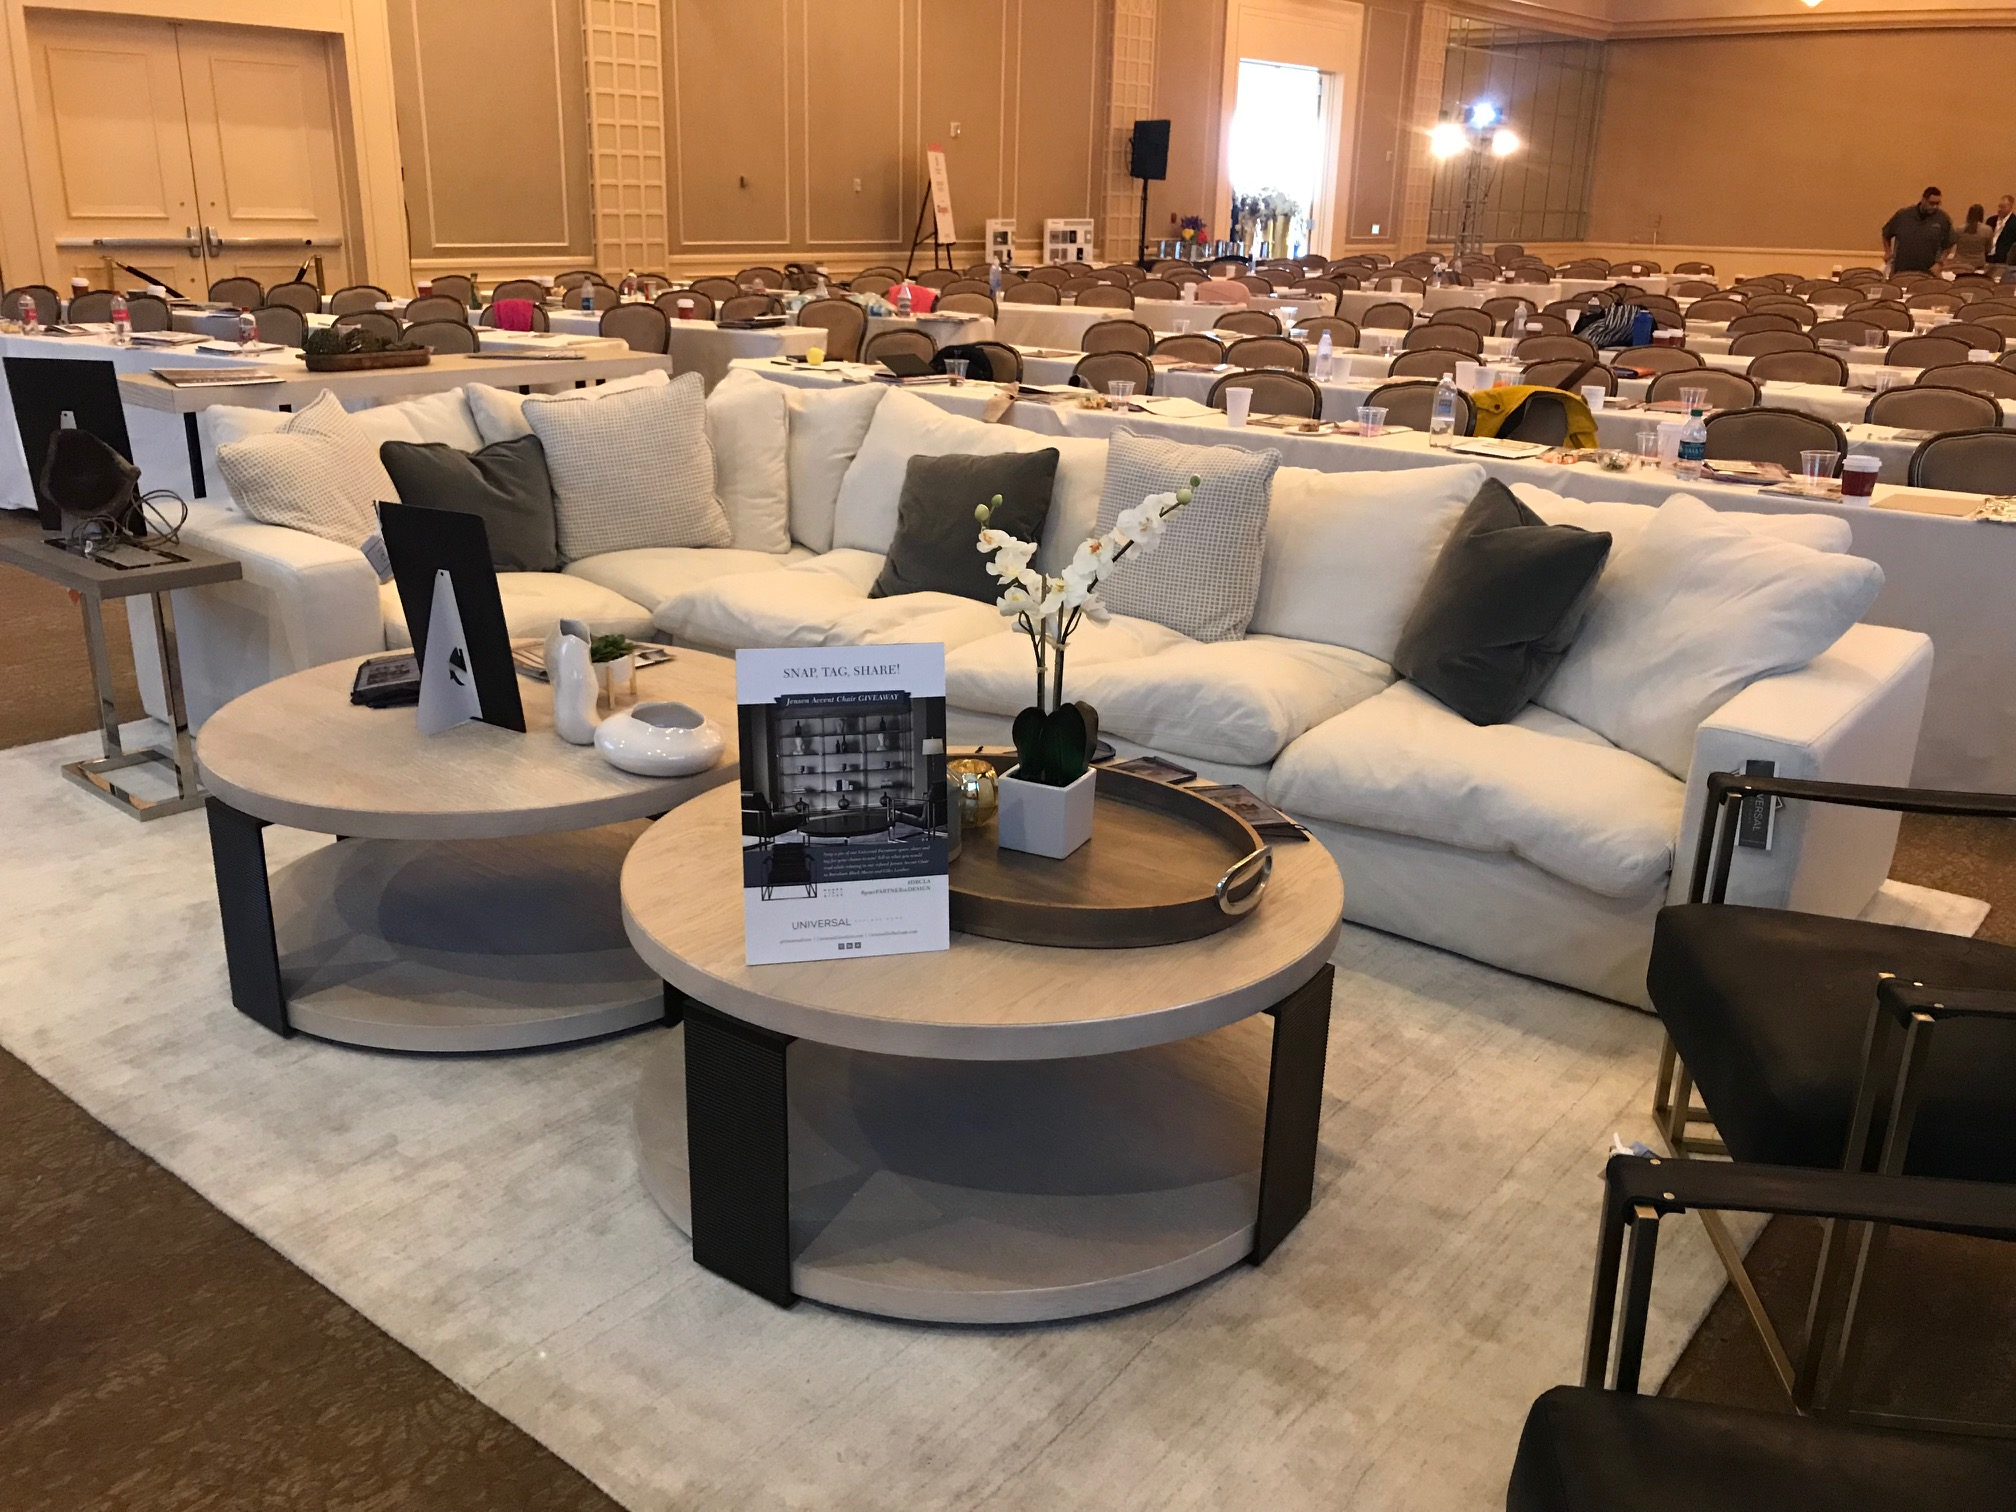 Universal Furniture, a valued Revolution customer, also sponsored at the DBC and used a Revolution sofa in their seating area!